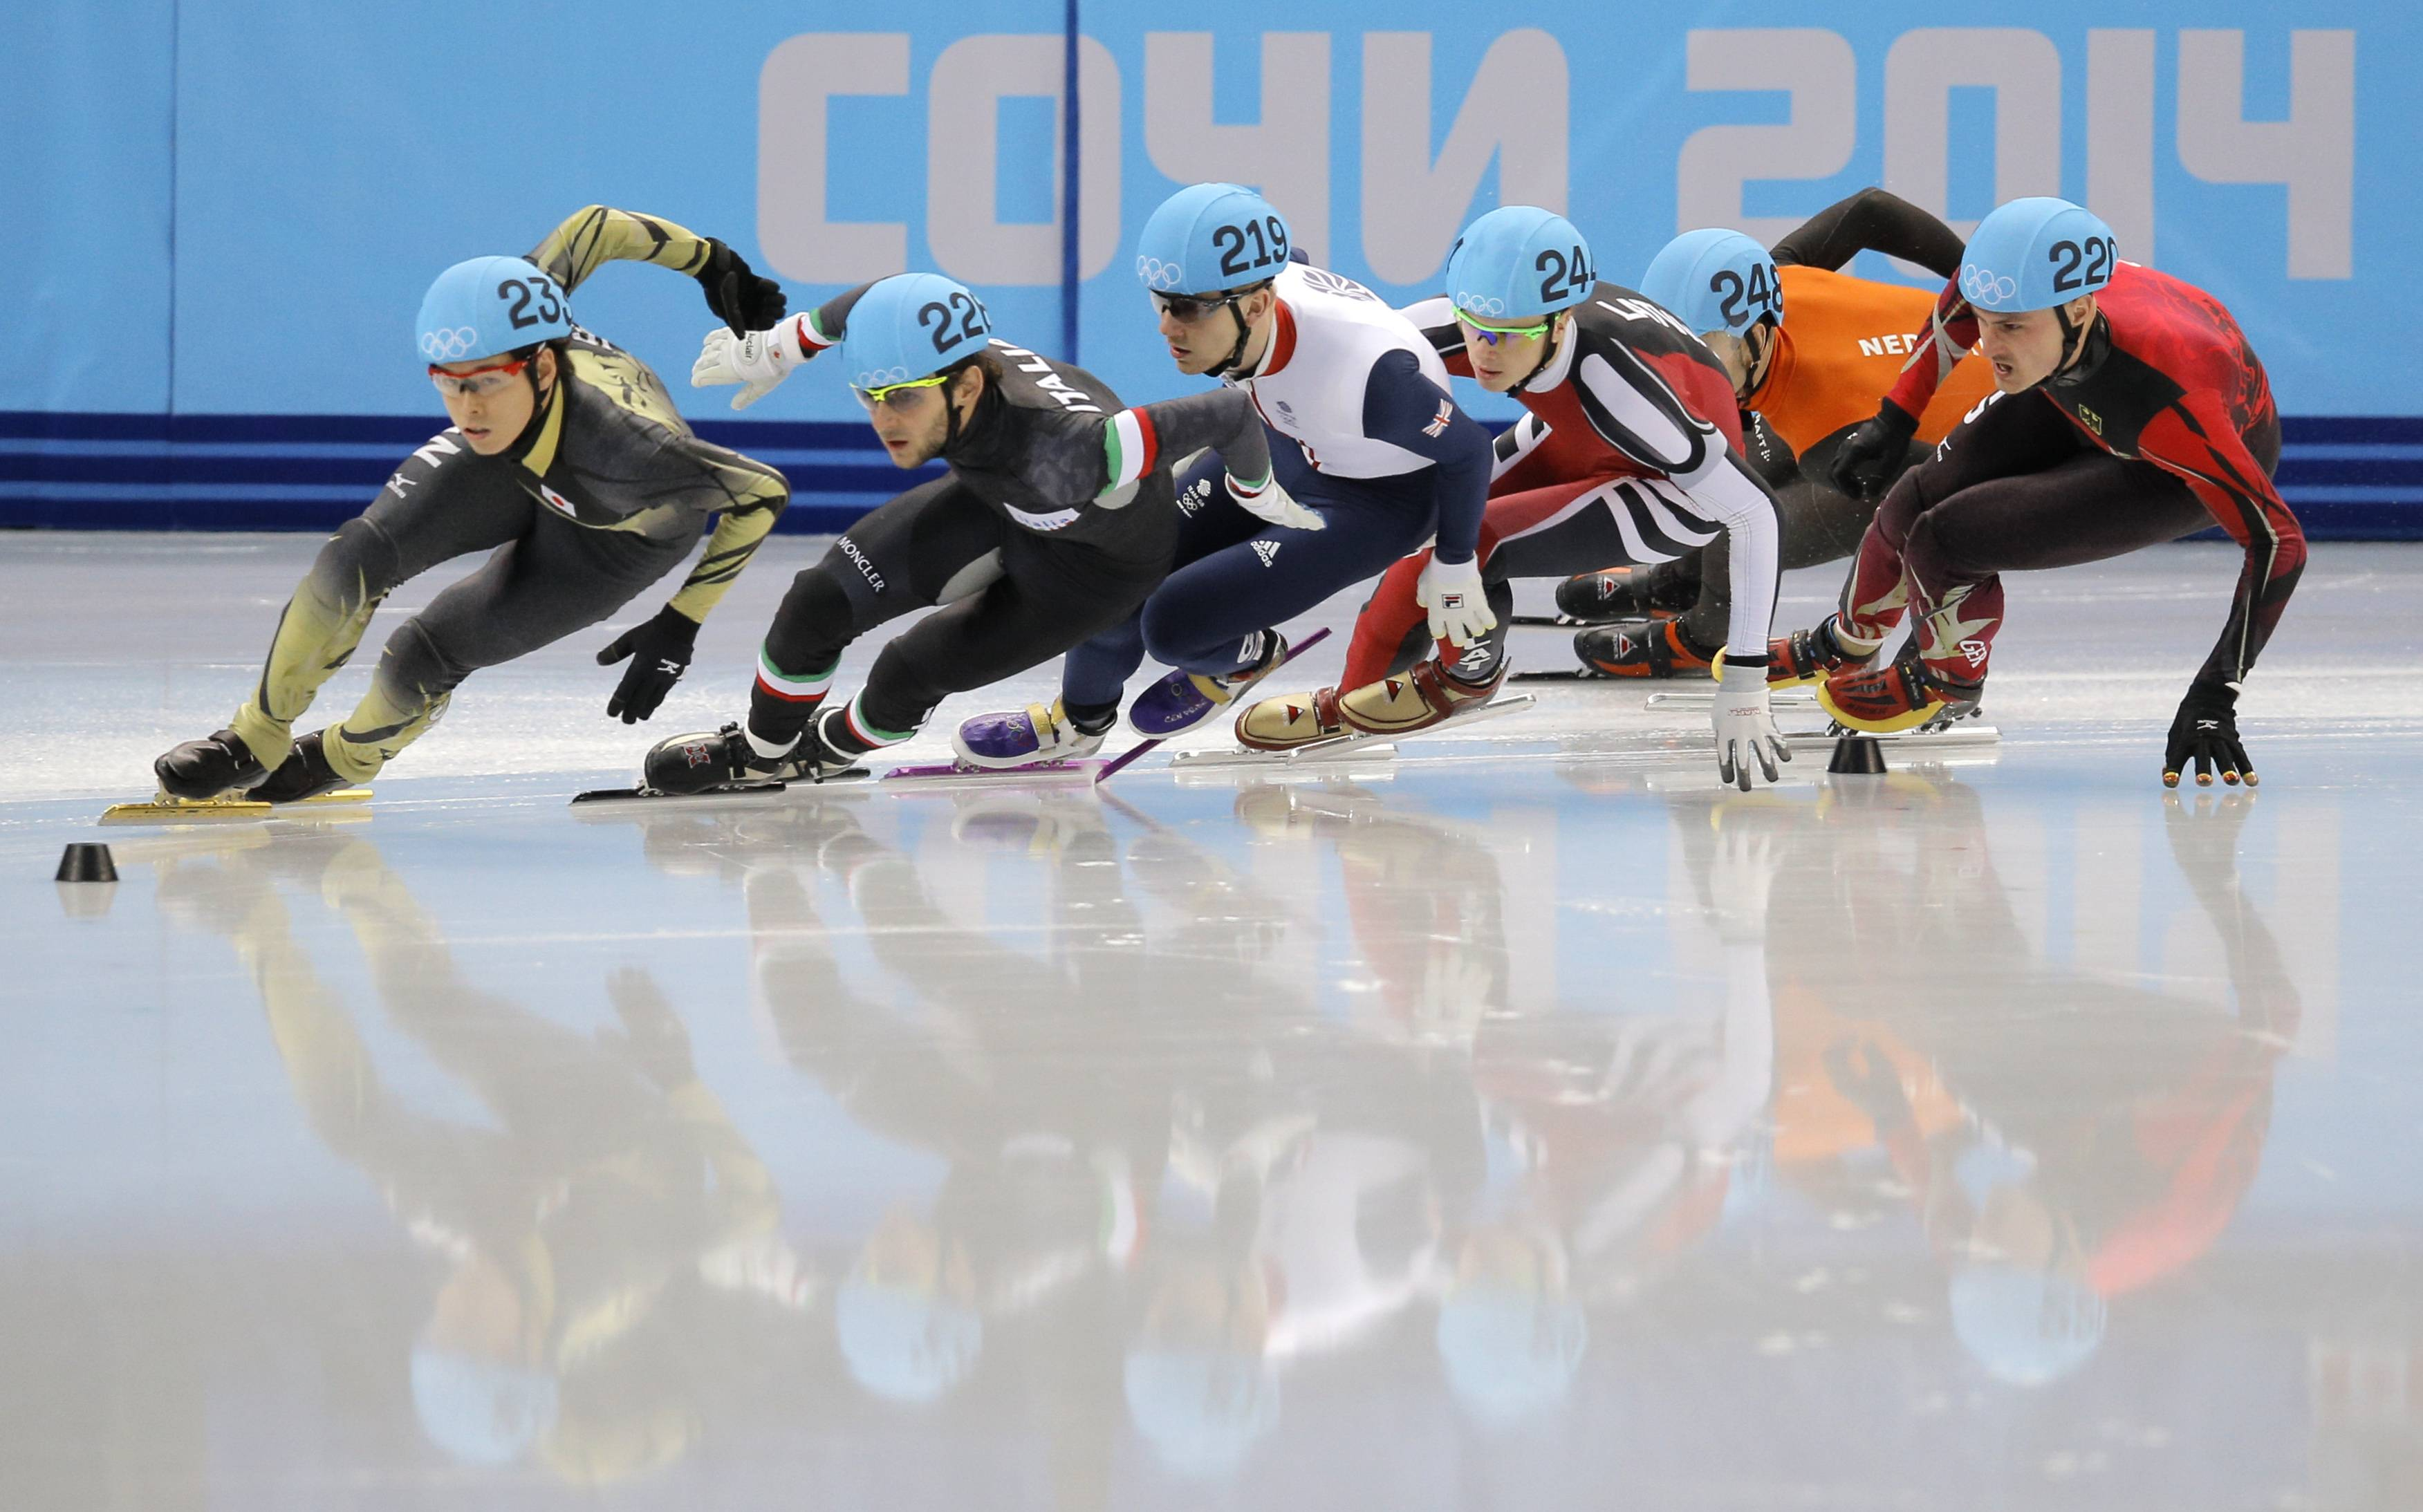 From left, Yuzo Takamido of Japan, Yuri Confortola of Italy, Jack Whelbourne of Britain, Roberto Pukitis of Latvia, Sjinkie Knegt of Netherlands, and Robert Seifert of Germany compete in a men's 1500m short track speedskating.